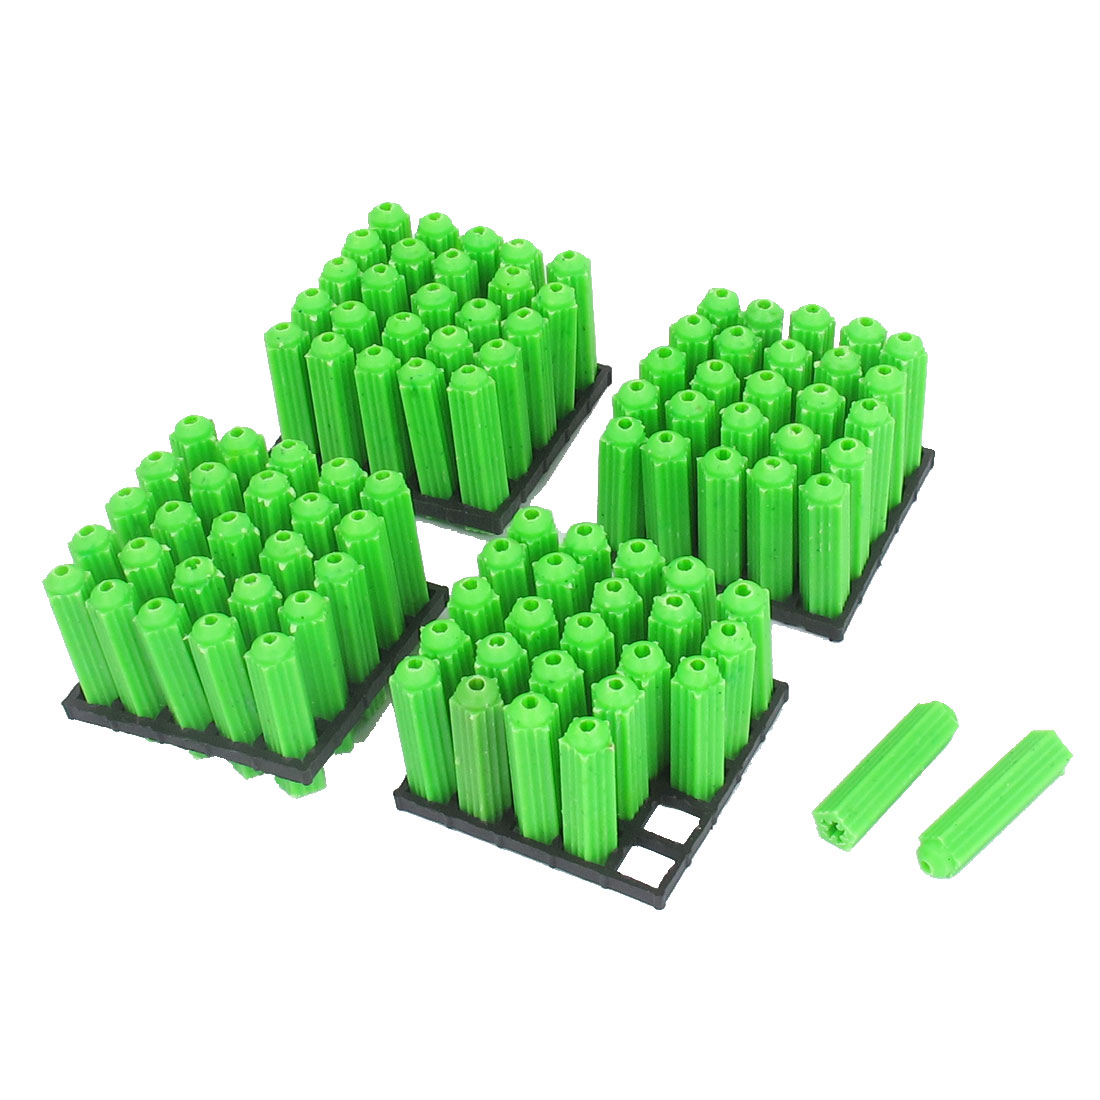 6mmx25mm Masonry Fixing Nonslip Plastic Wall Green 100pcs